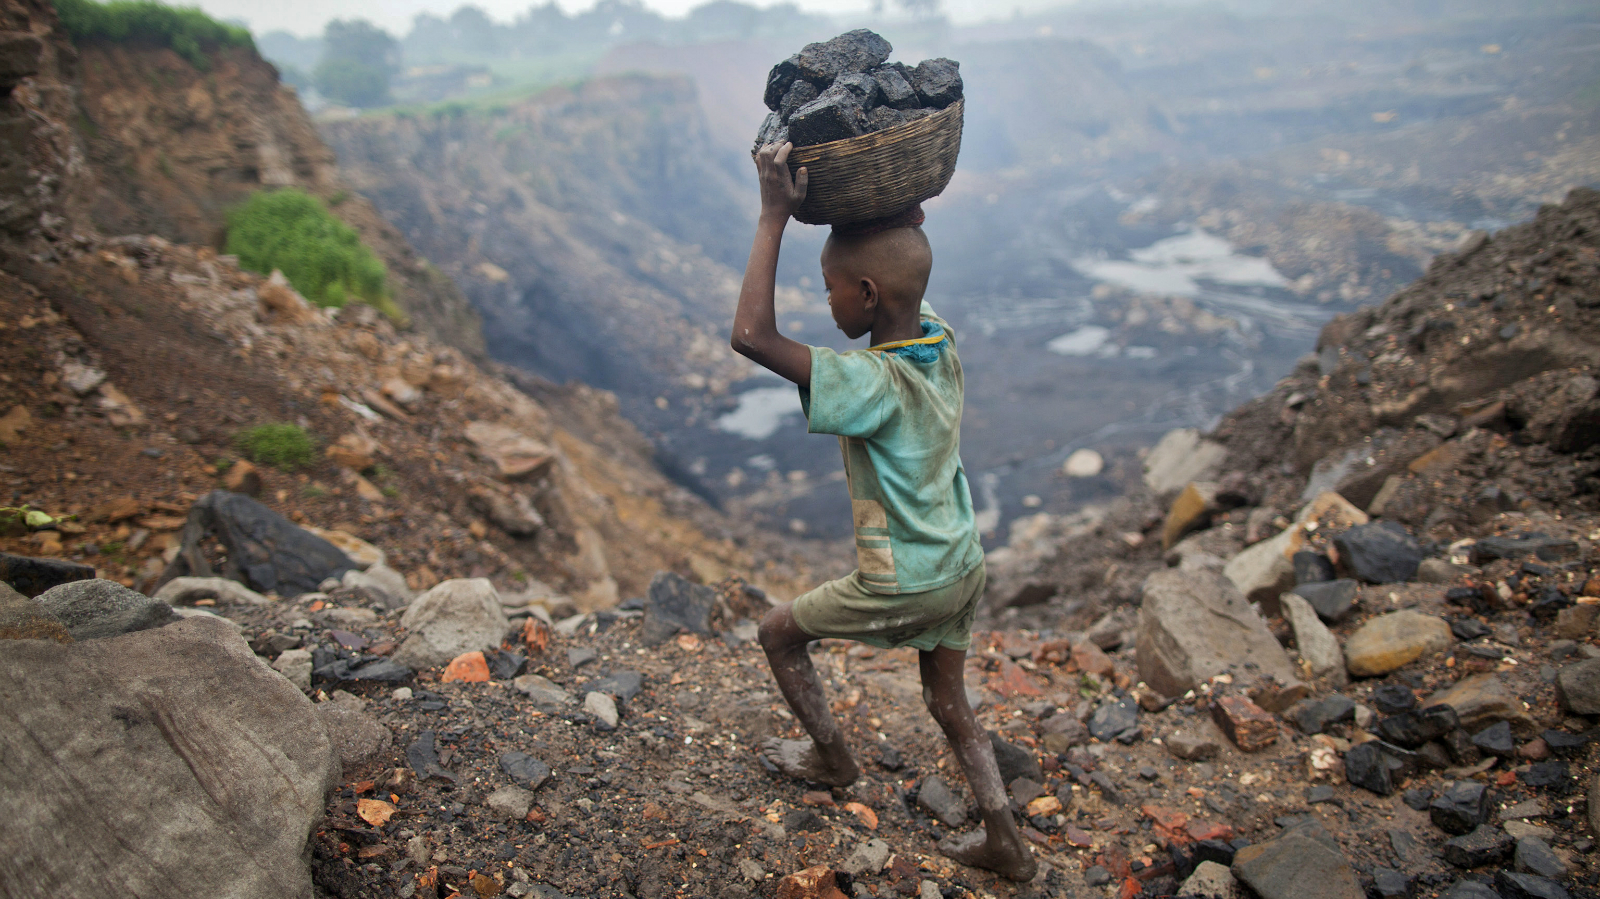 A boy carries coal at an open cast coal field at Dhanbad district in the eastern Indian state of Jharkhand September 20, 2012. With oil and gas output disappointing and hydropower at full throttle, Asia's third-largest economy still relies on coal for most of its vast energy needs. About 75 percent of India's coal demand is met by domestic production and, according to government plans, that won't change over the next five years. Picture taken September 20, 2012. To match INDIA-COAL/